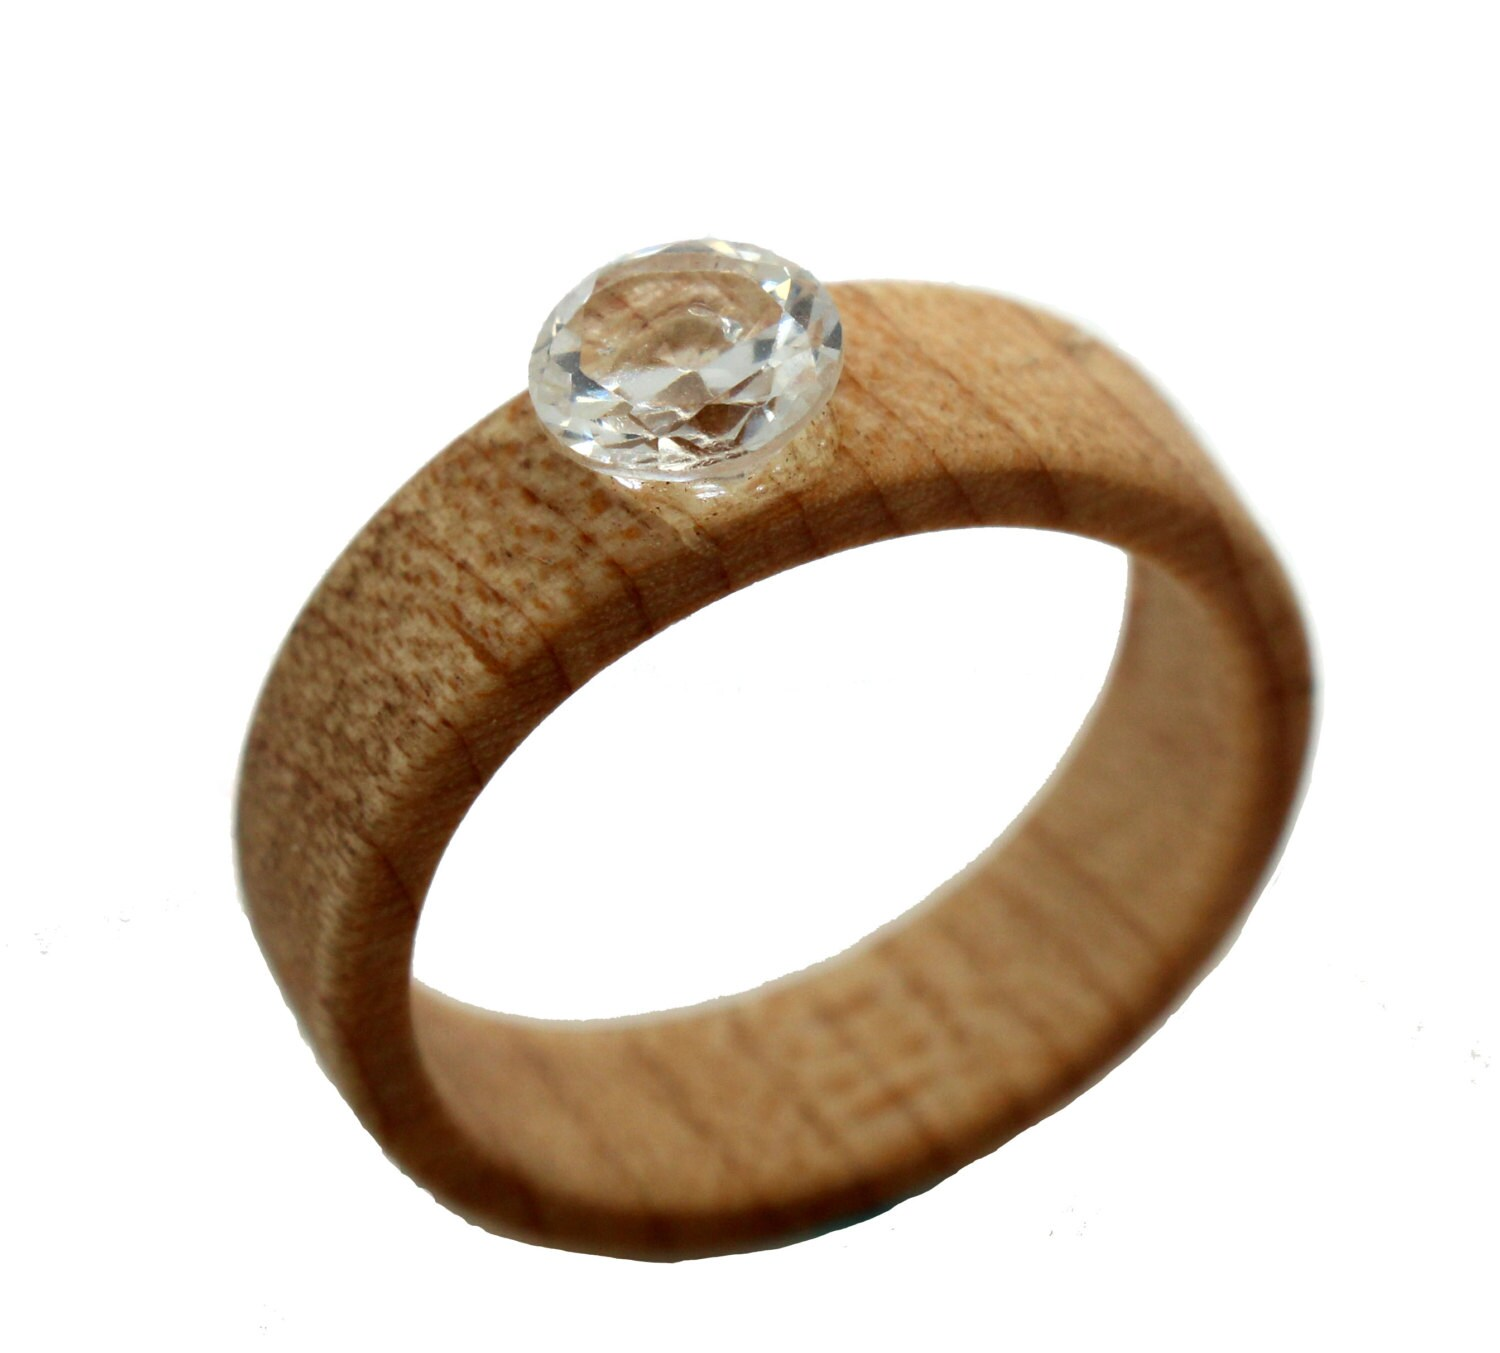 5mm sapphire wooden engagement ring by woodenweddingrings